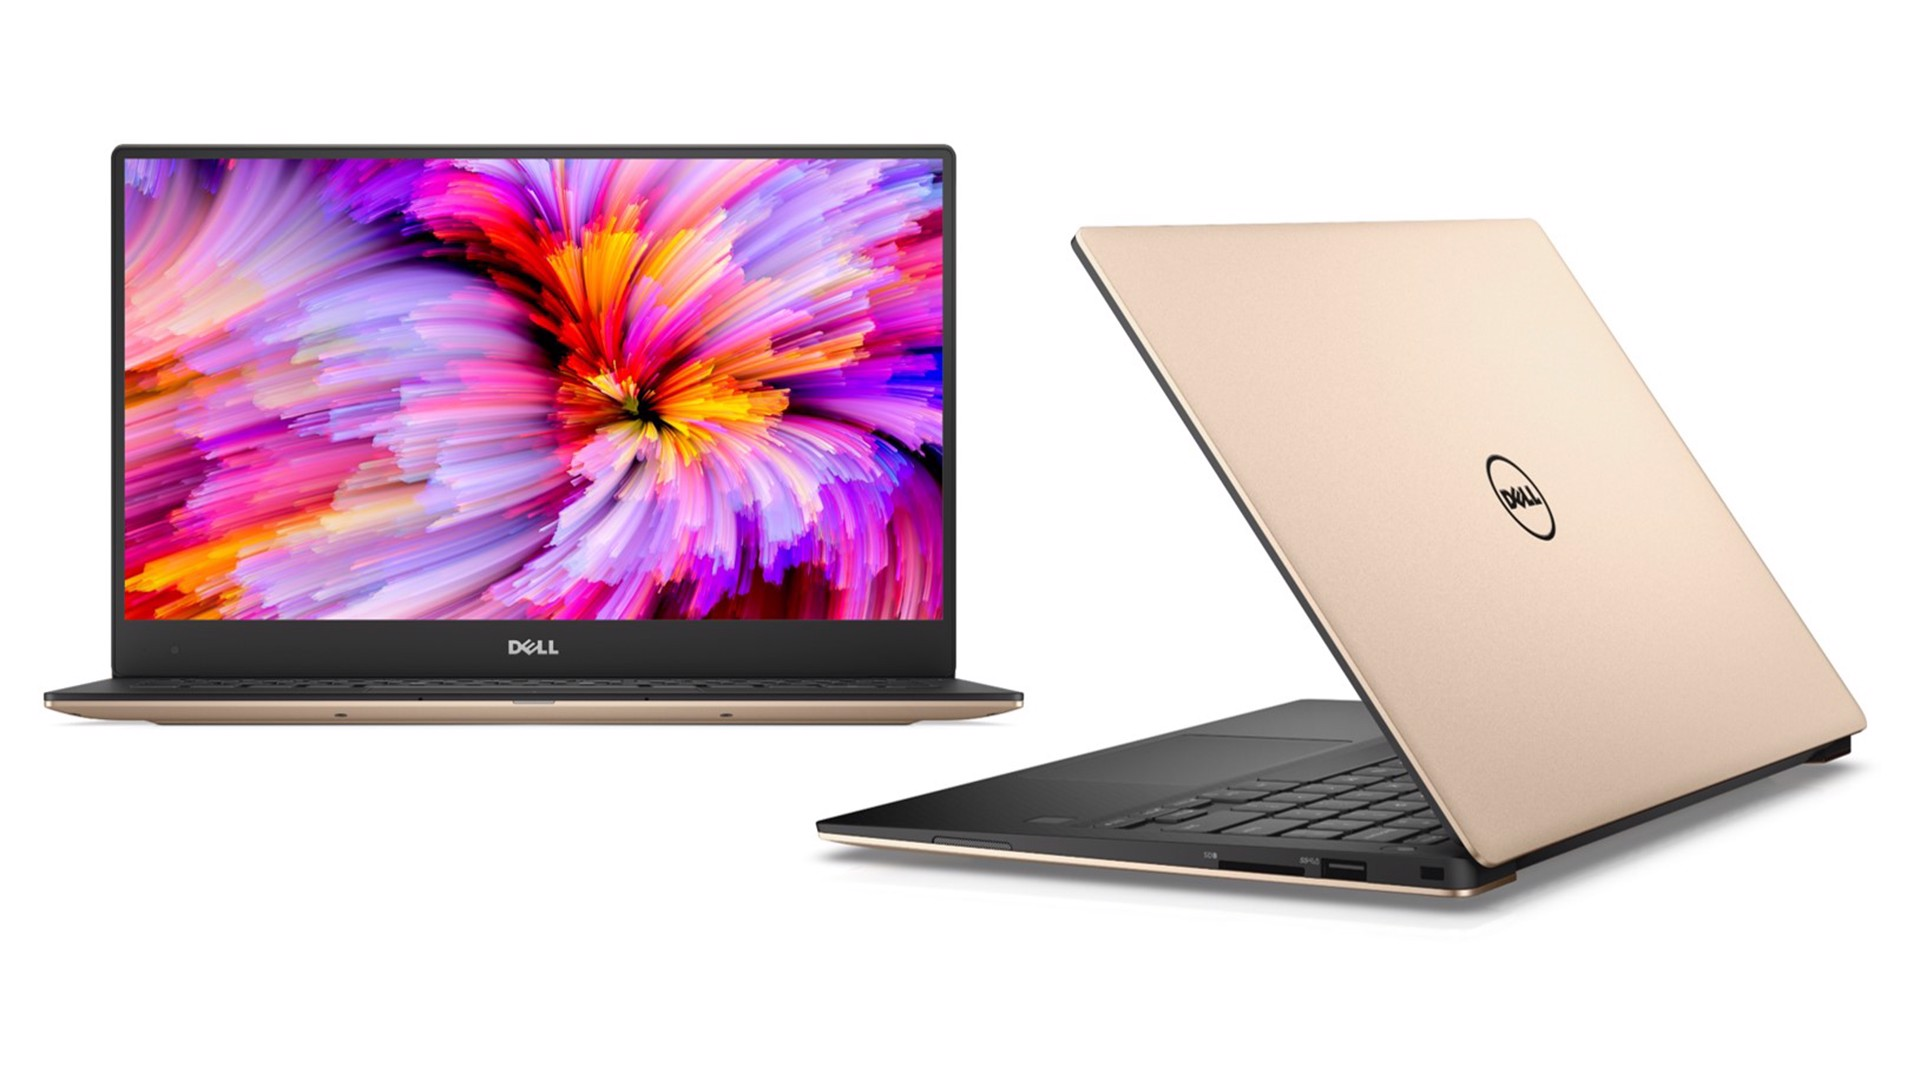 Dell XPS 13 9343 Intel Core i5-5200U